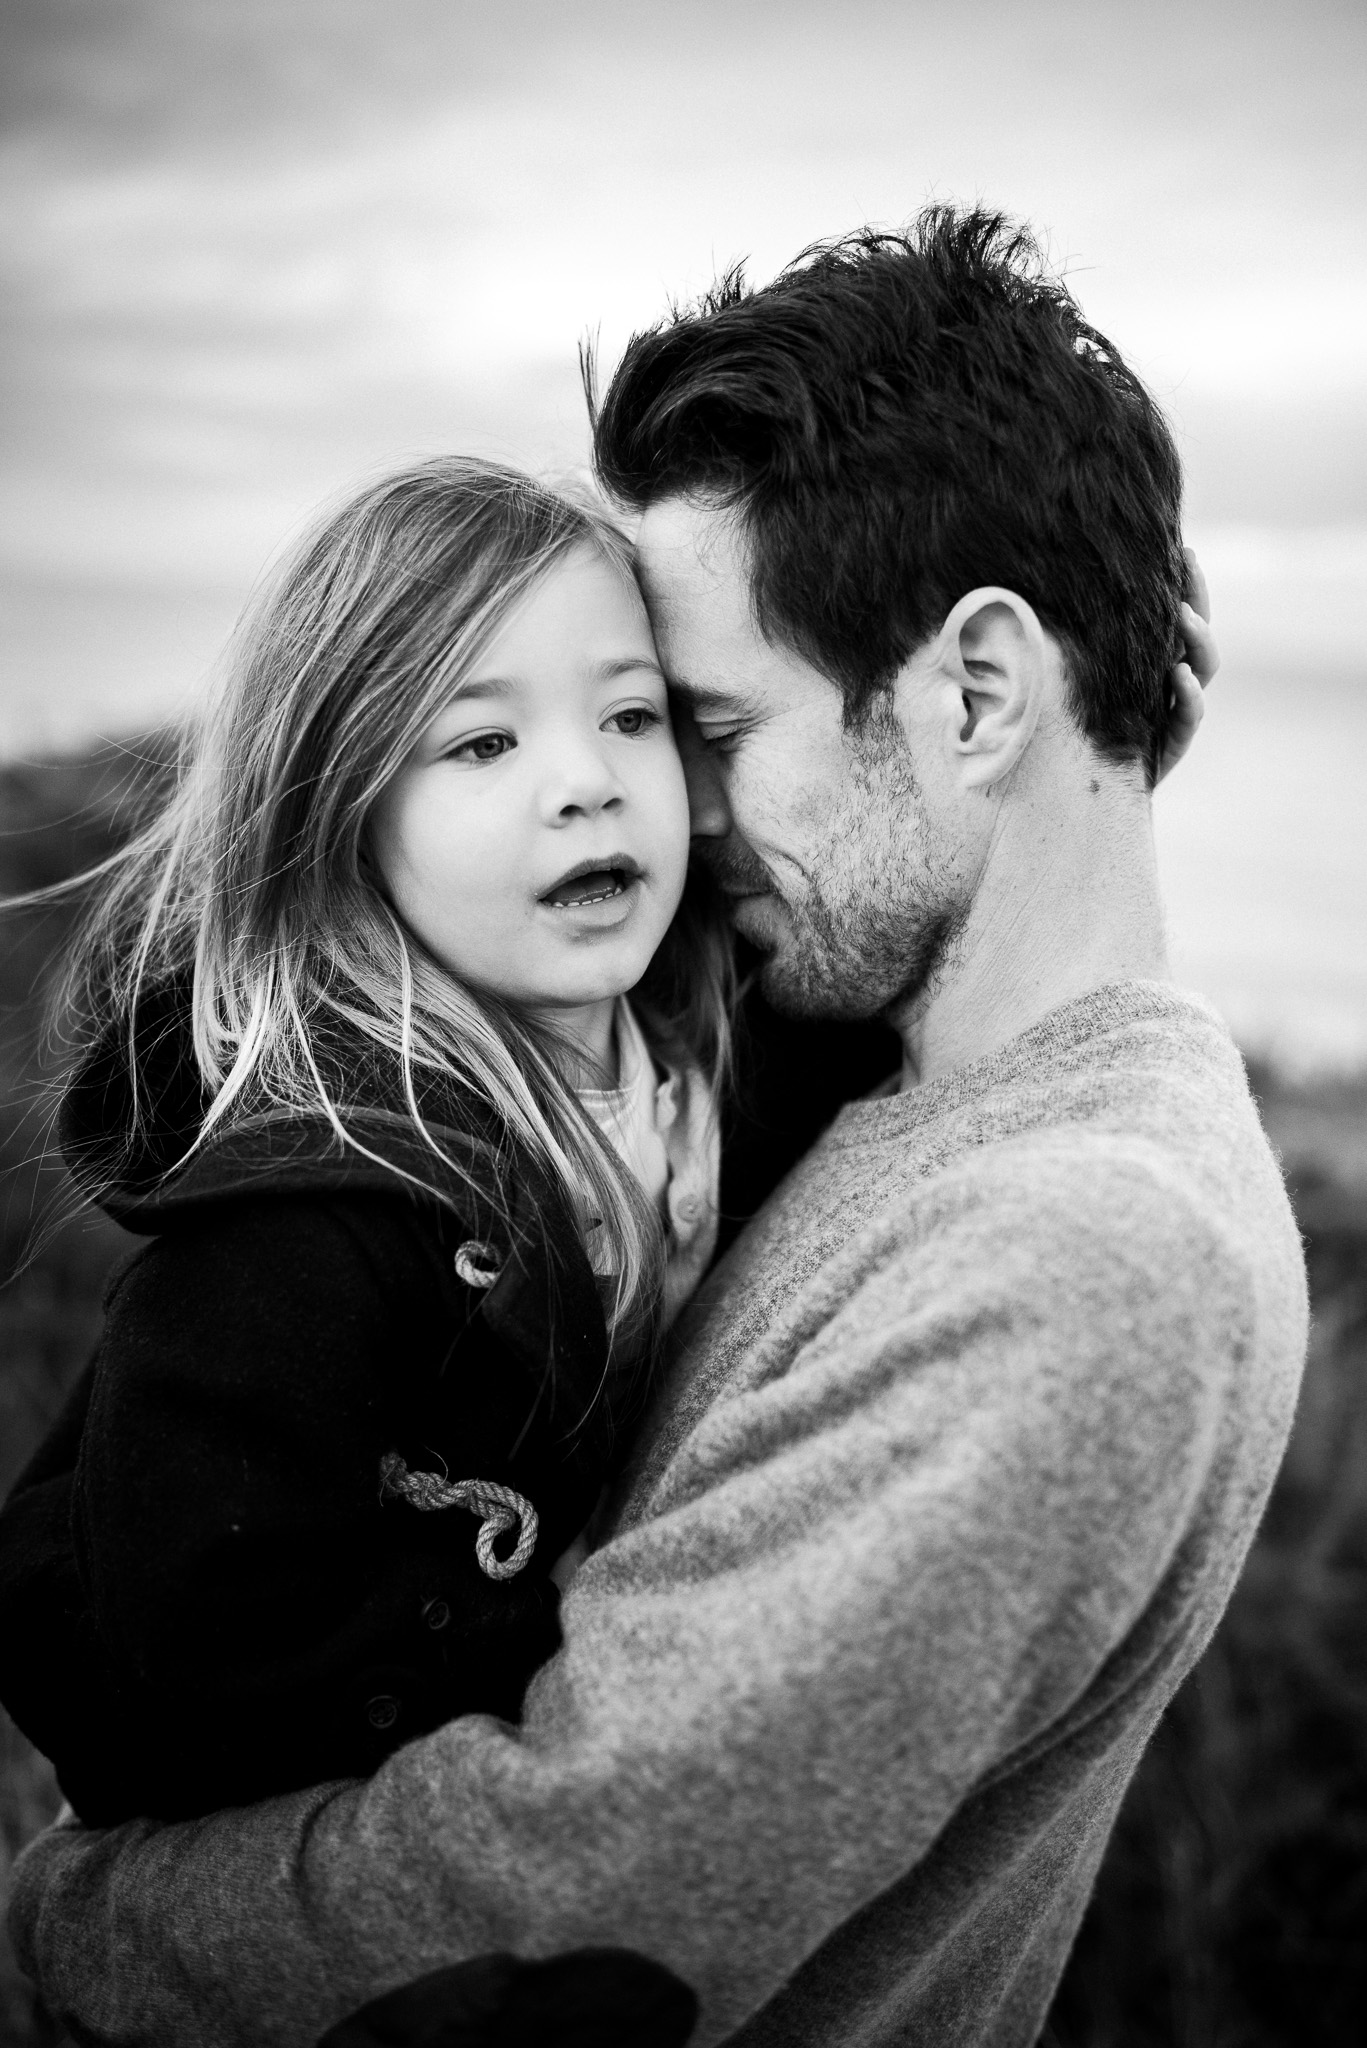 heartfelt father and daughter image + melbourne family photographer, Jess Worrall Photography